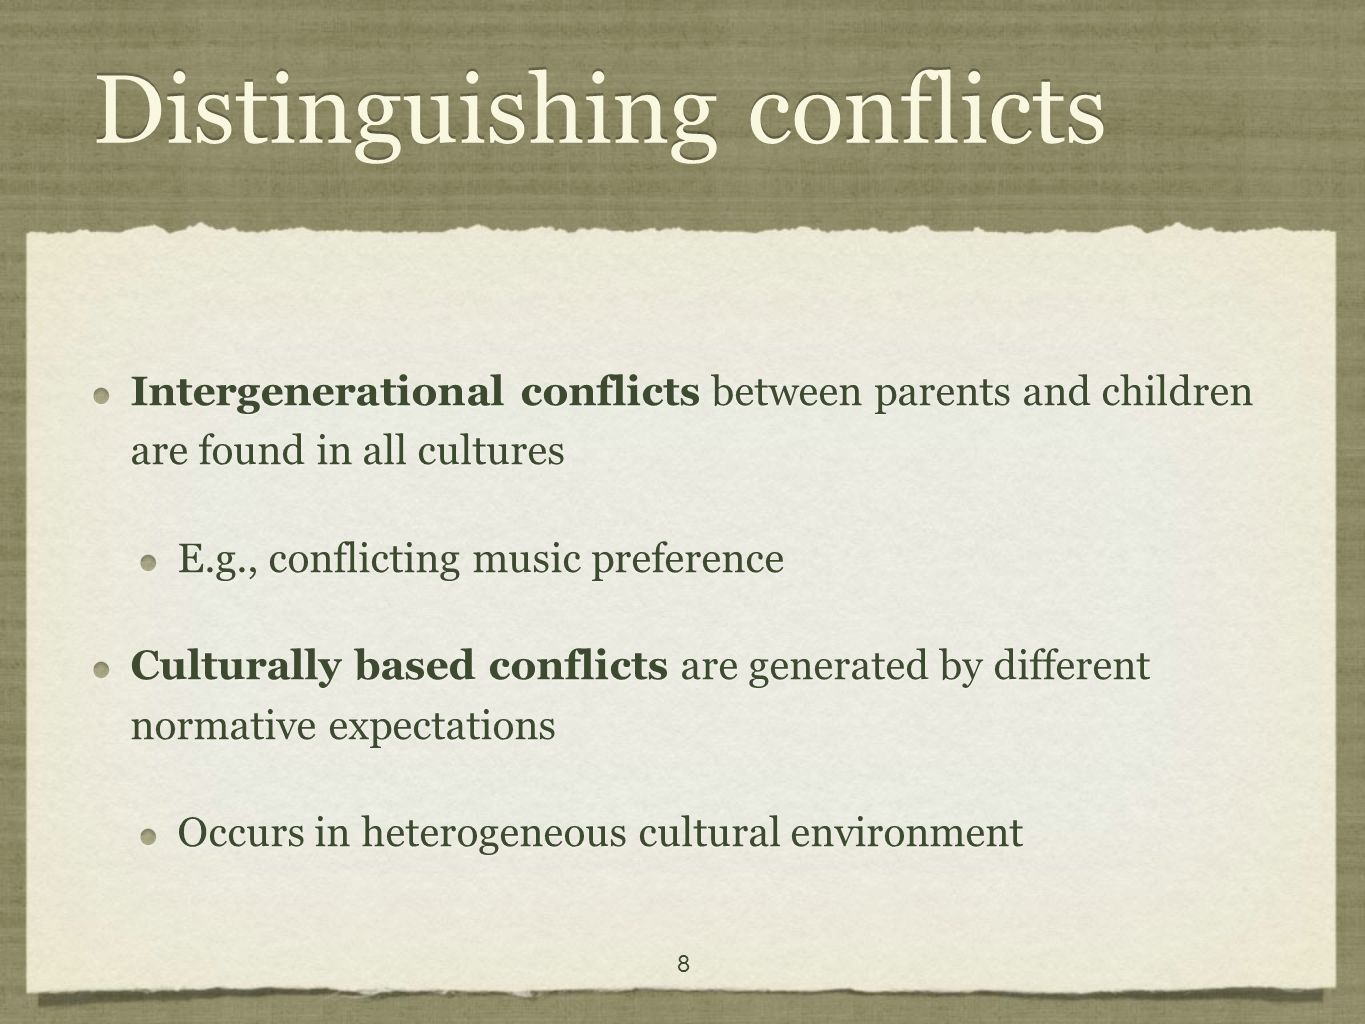 8 Distinguishing conflicts Intergenerational conflicts between parents and children are found in all cultures E.g., conflicting music preference Culturally based conflicts are generated by different normative expectations Occurs in heterogeneous cultural environment Intergenerational conflicts between parents and children are found in all cultures E.g., conflicting music preference Culturally based conflicts are generated by different normative expectations Occurs in heterogeneous cultural environment